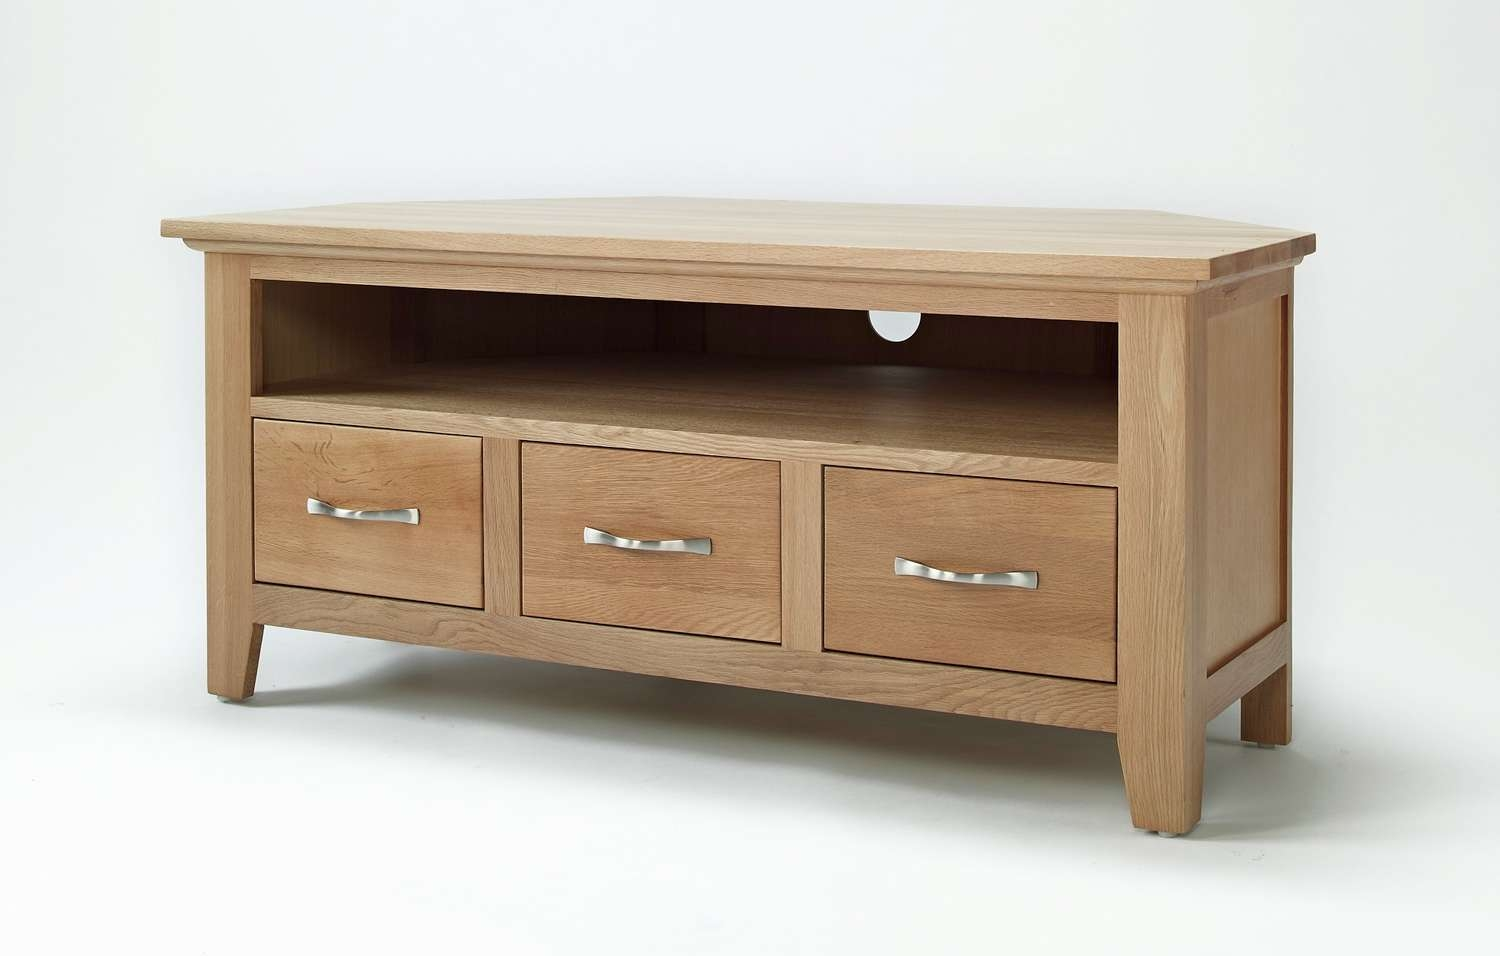 Elegant Oak Corner Television Unit | Hampshire Furniture Inside Corner Wooden Tv Cabinets (View 7 of 20)